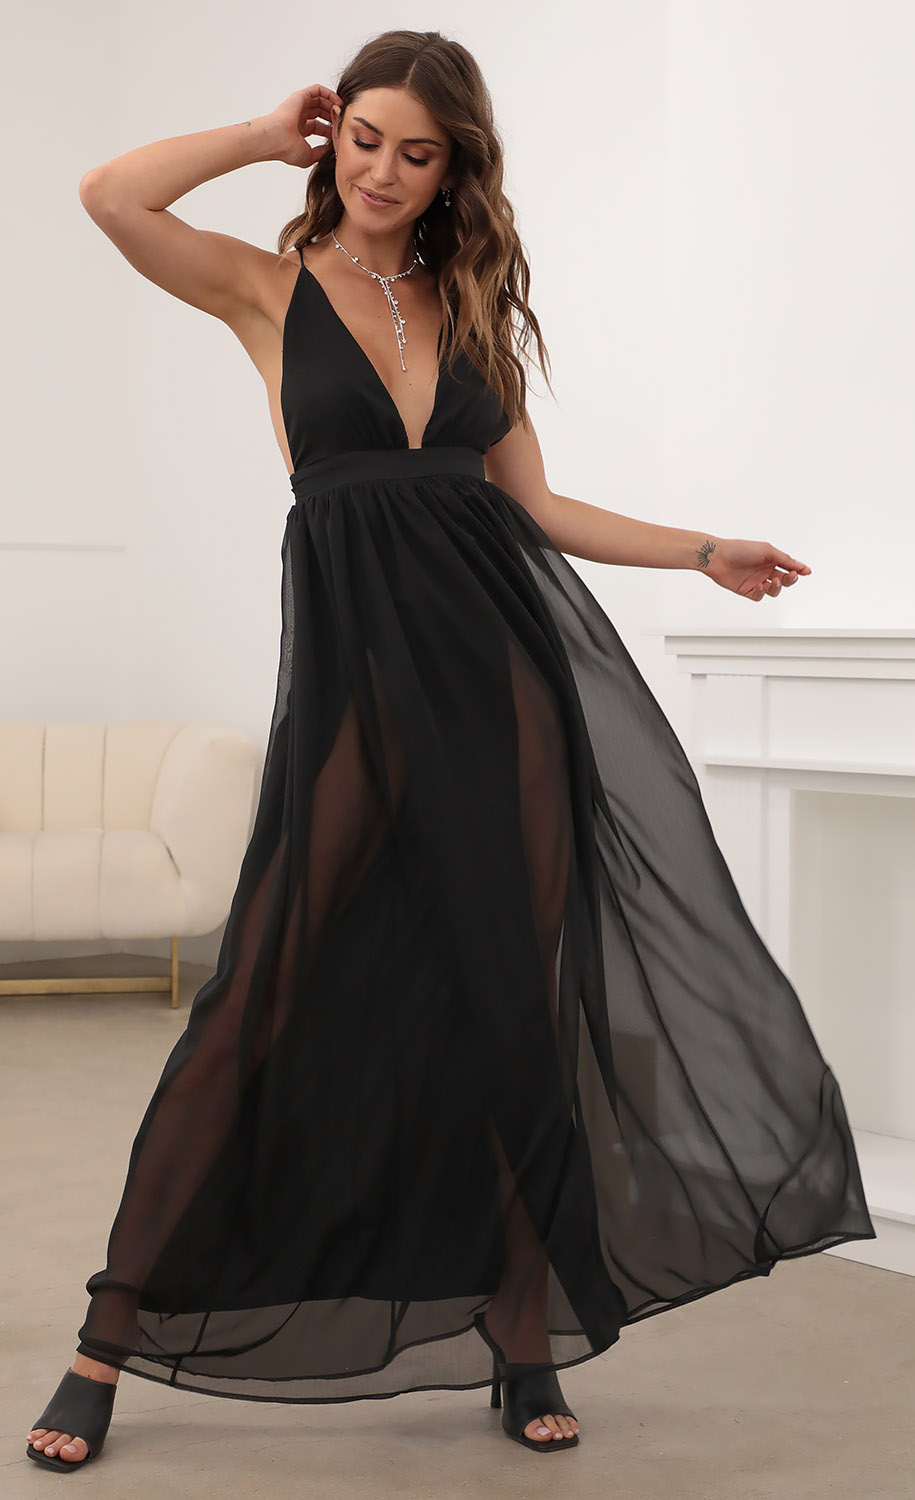 Lyra Black Chiffon Slit Maxi Dress